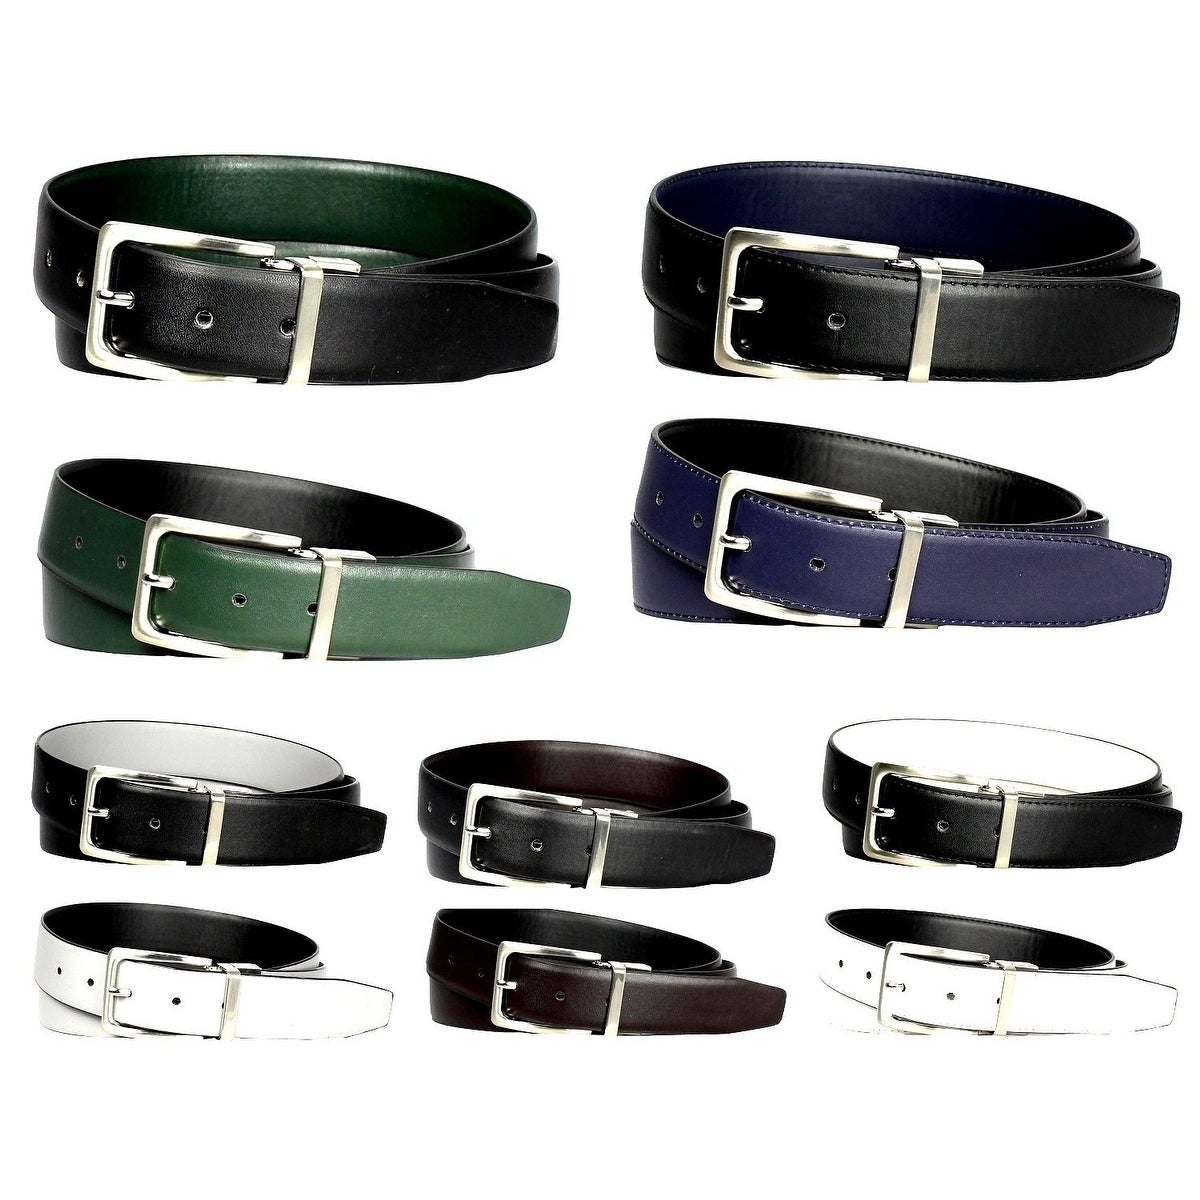 Stacy Adams Geuine Leather Croc Embossed Men/' Belt One Size Fits All4 Colors